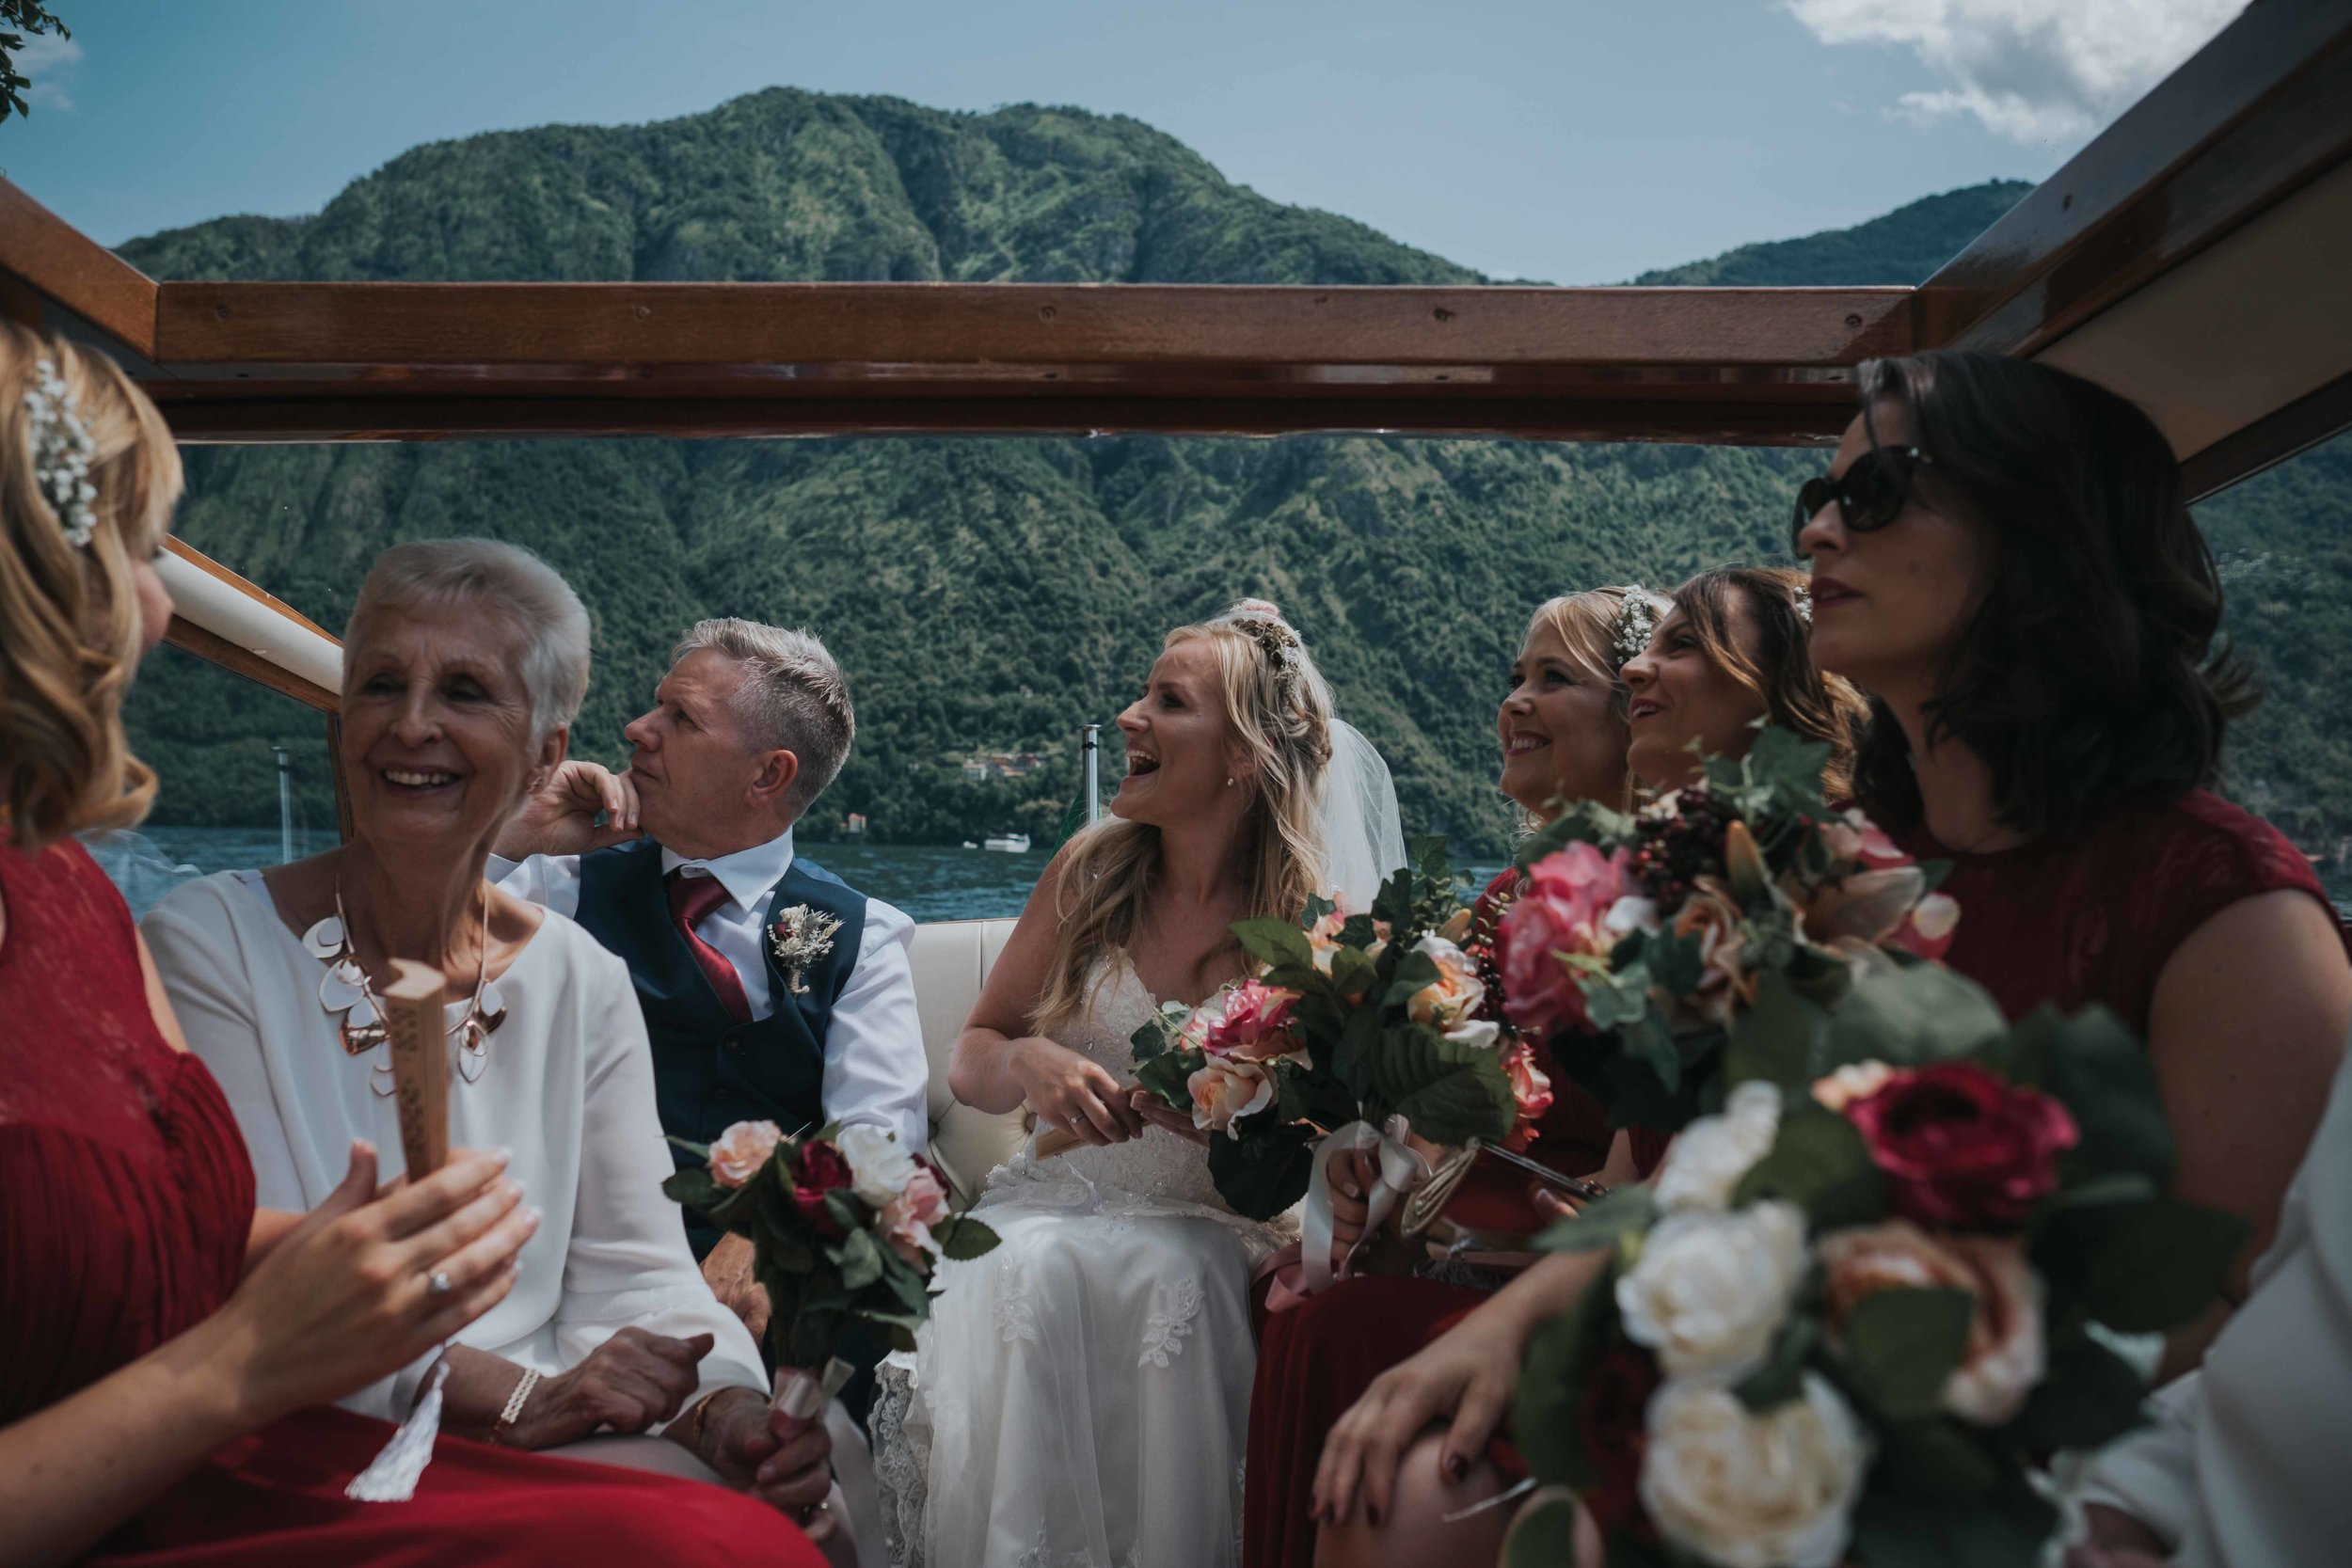 Laco Como Italy destination wedding photographer cheshire north west england documentry photography (42 of 117).jpg